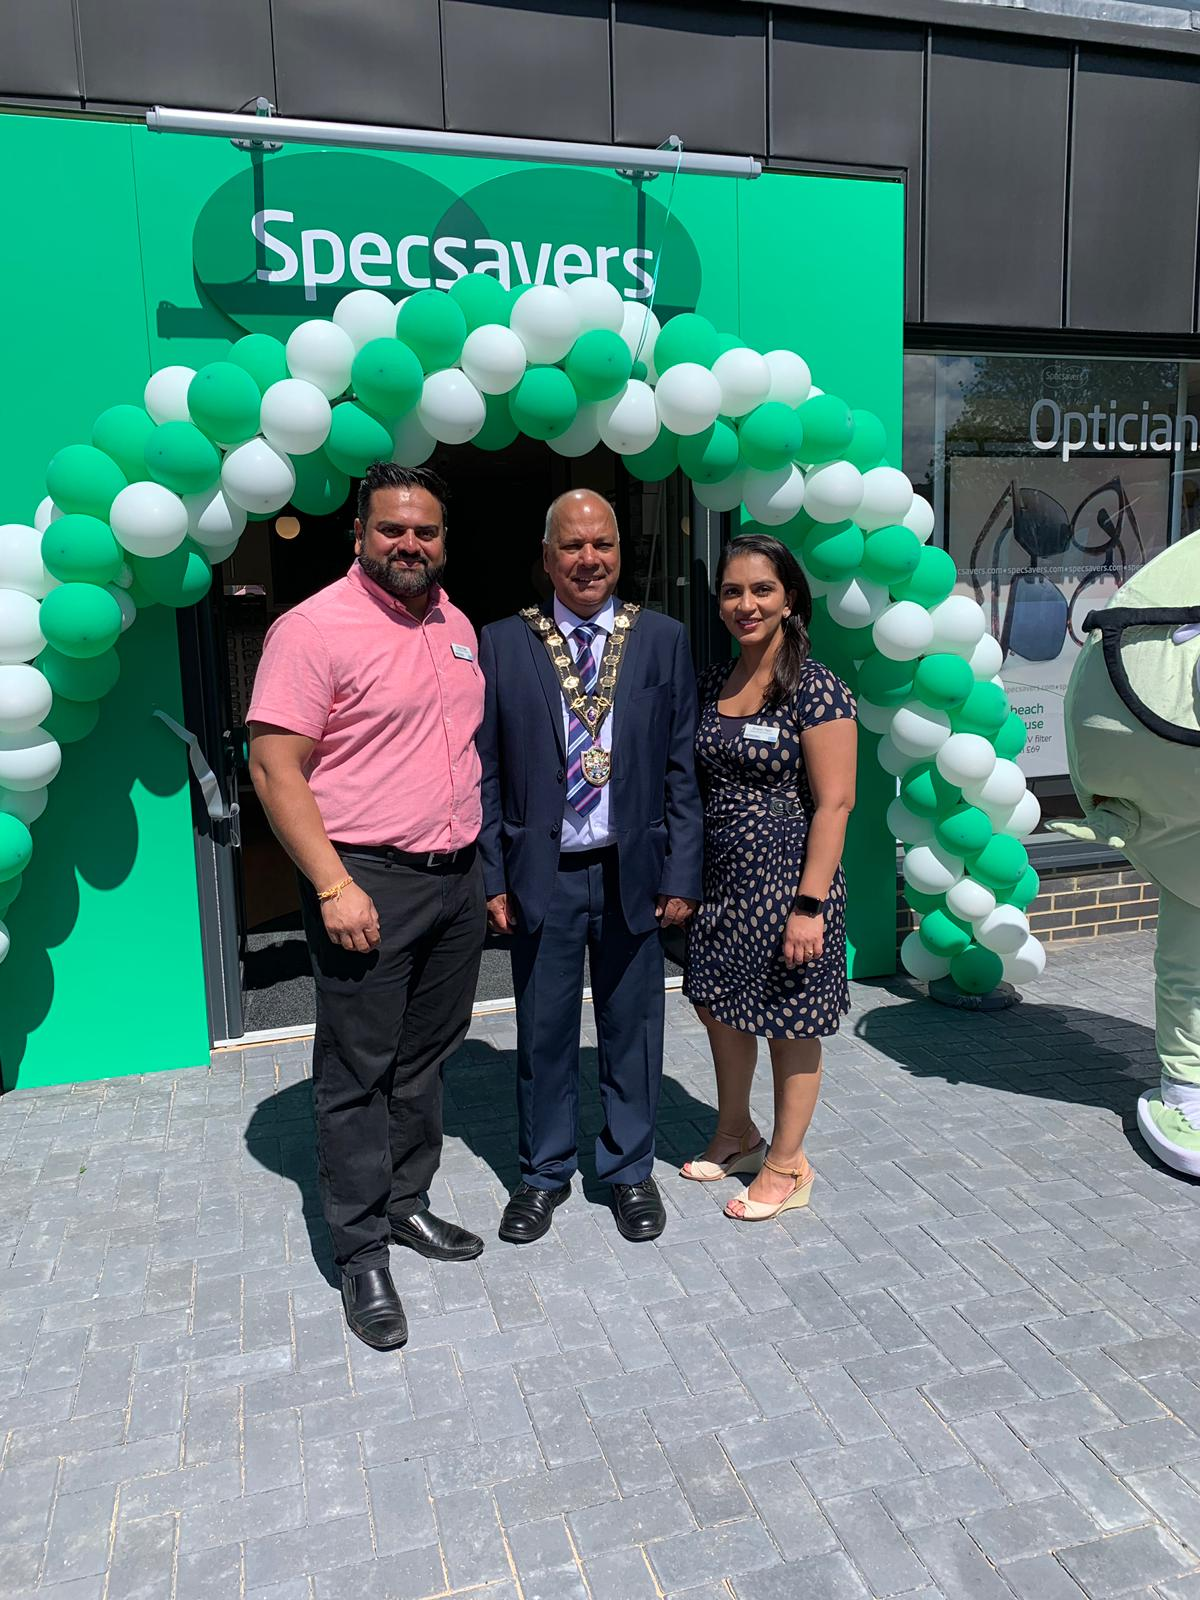 Pharmacists Mitesh and Bhavini Patel and Mayor of Eastleigh Cllr Darshan Mann at the new Specsavers branch in Chandler's Ford